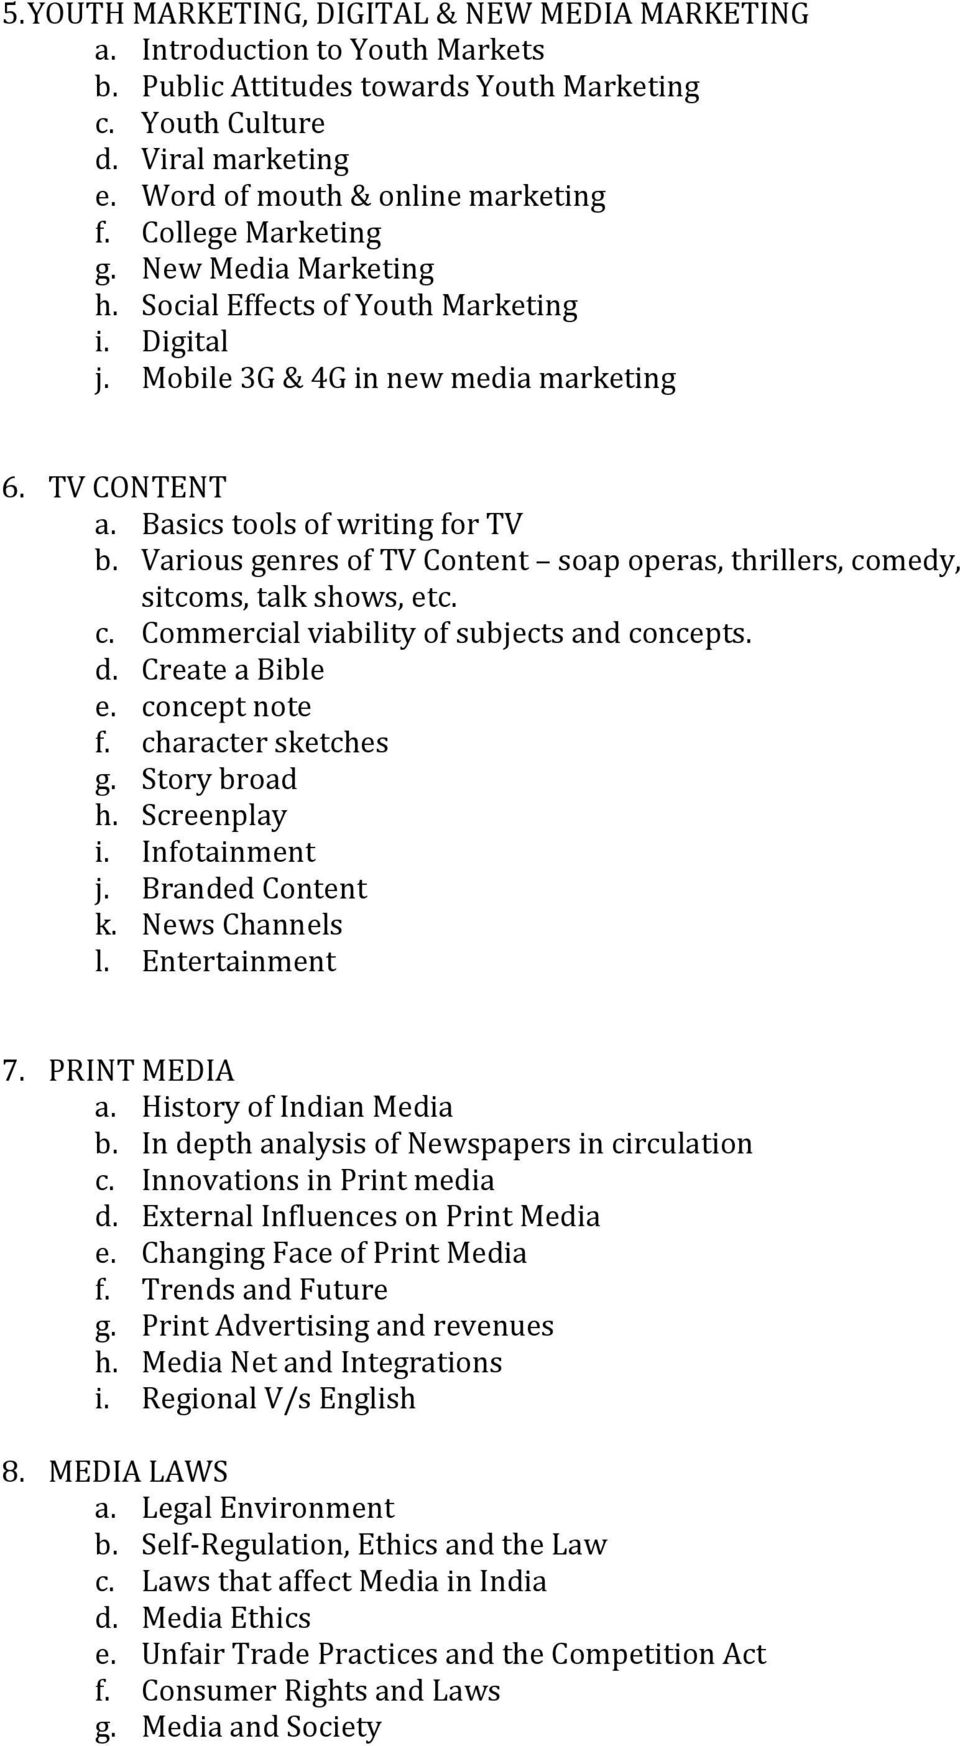 Basics tools of writing for TV b. Various genres of TV Content soap operas, thrillers, comedy, sitcoms, talk shows, etc. c. Commercial viability of subjects and concepts. d. Create a Bible e.